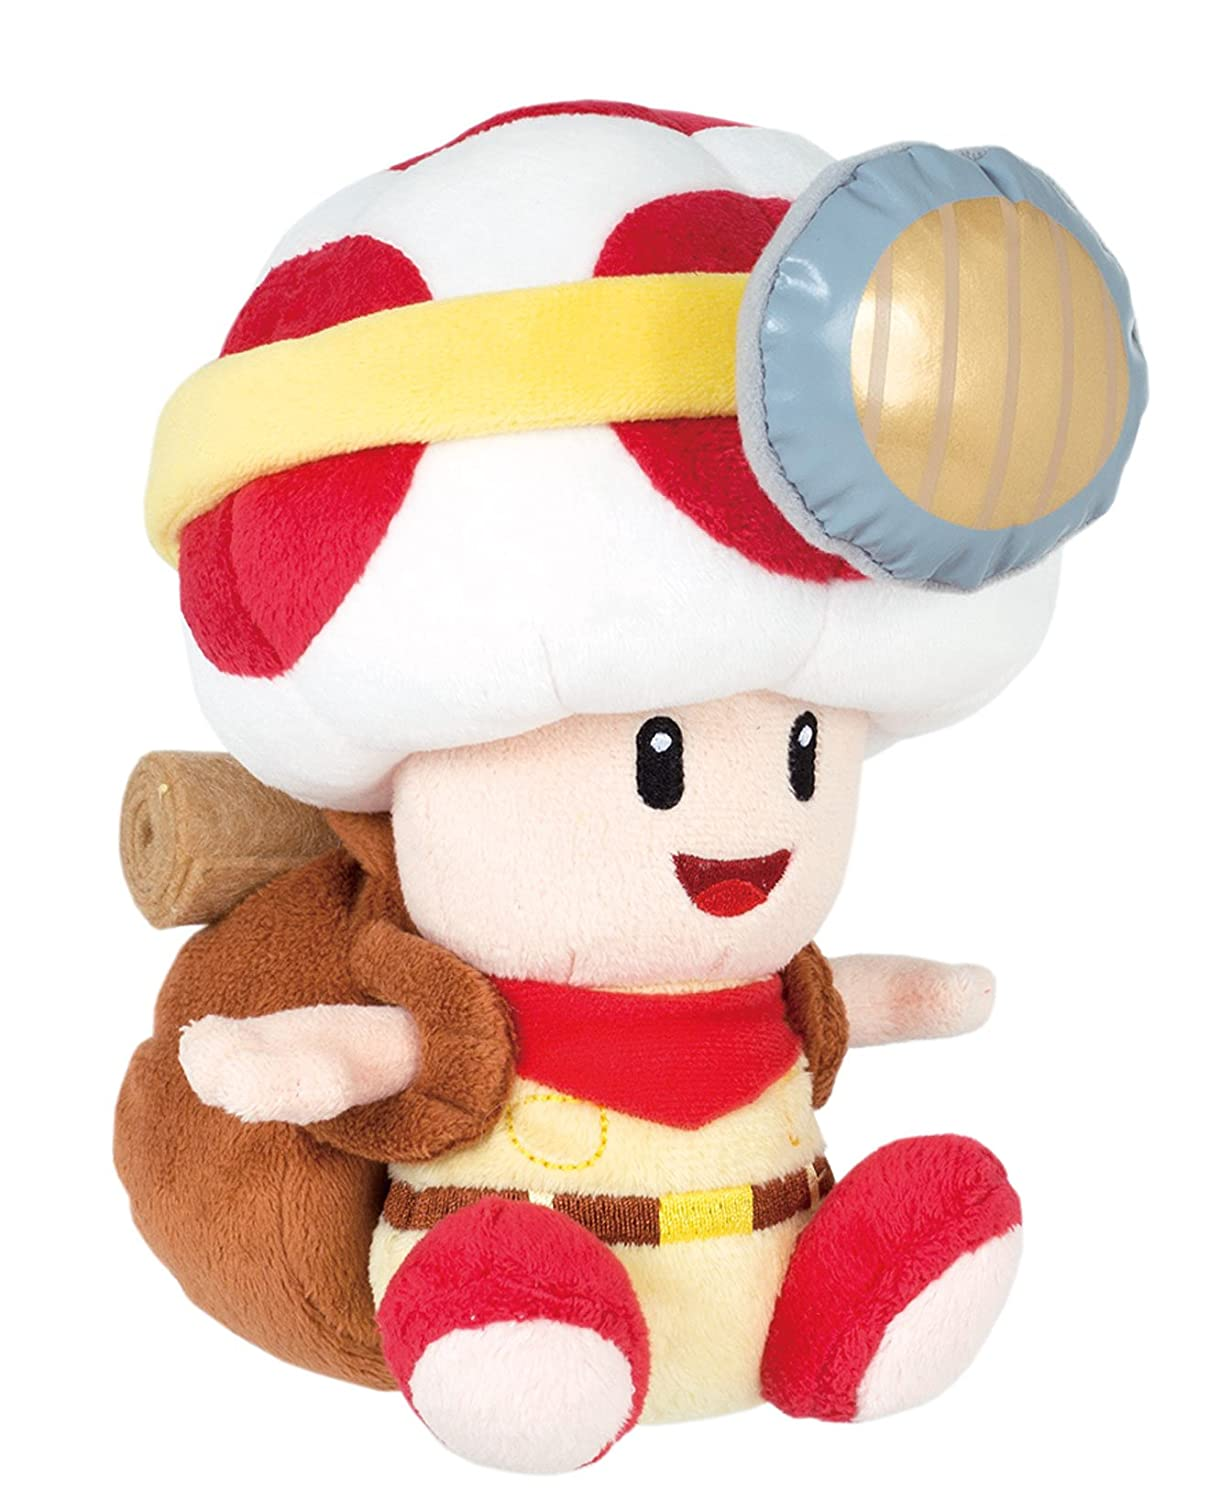 A Grand List Of All Mario Plush Toys From Nintendo -